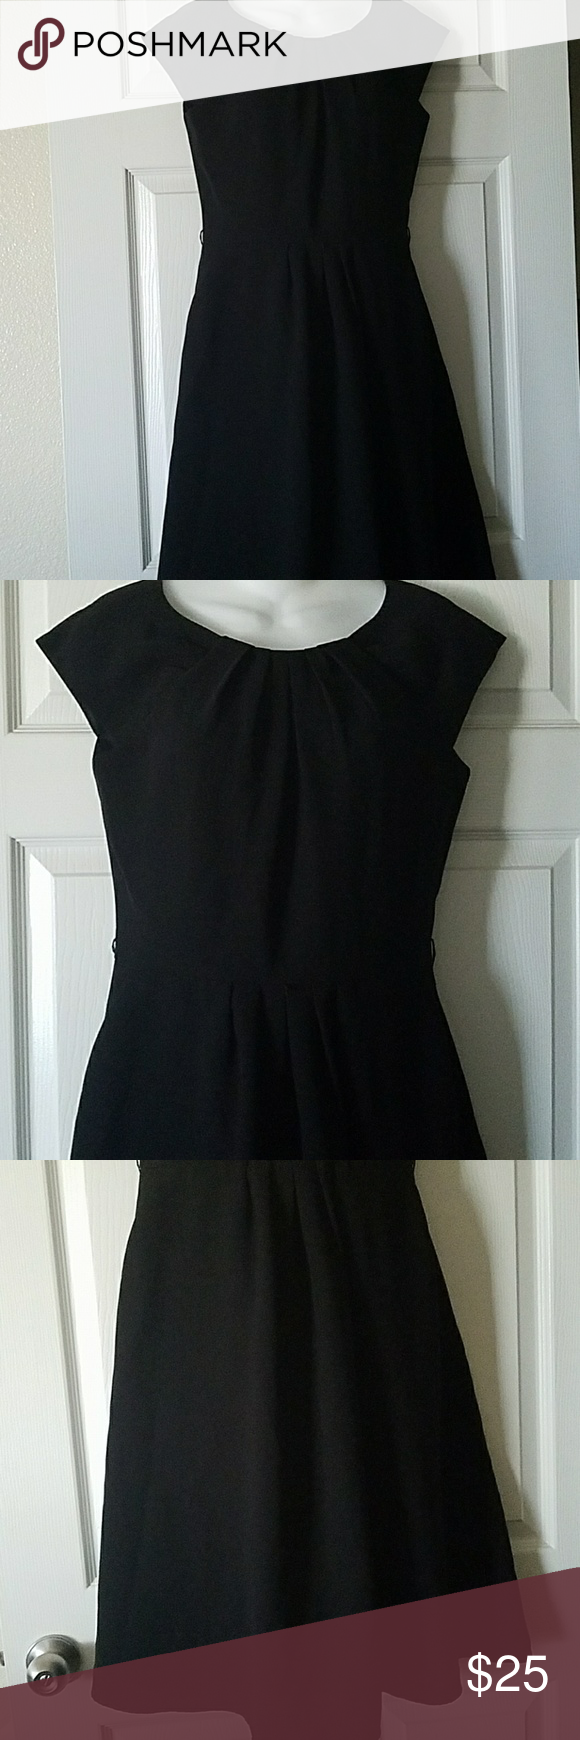 7cc72b1d041 Calvin Klein cocktail black dress size 8 Beautiful cocktail fit and flare black  dress by Calvin Klein in size 8. Excellent condition.